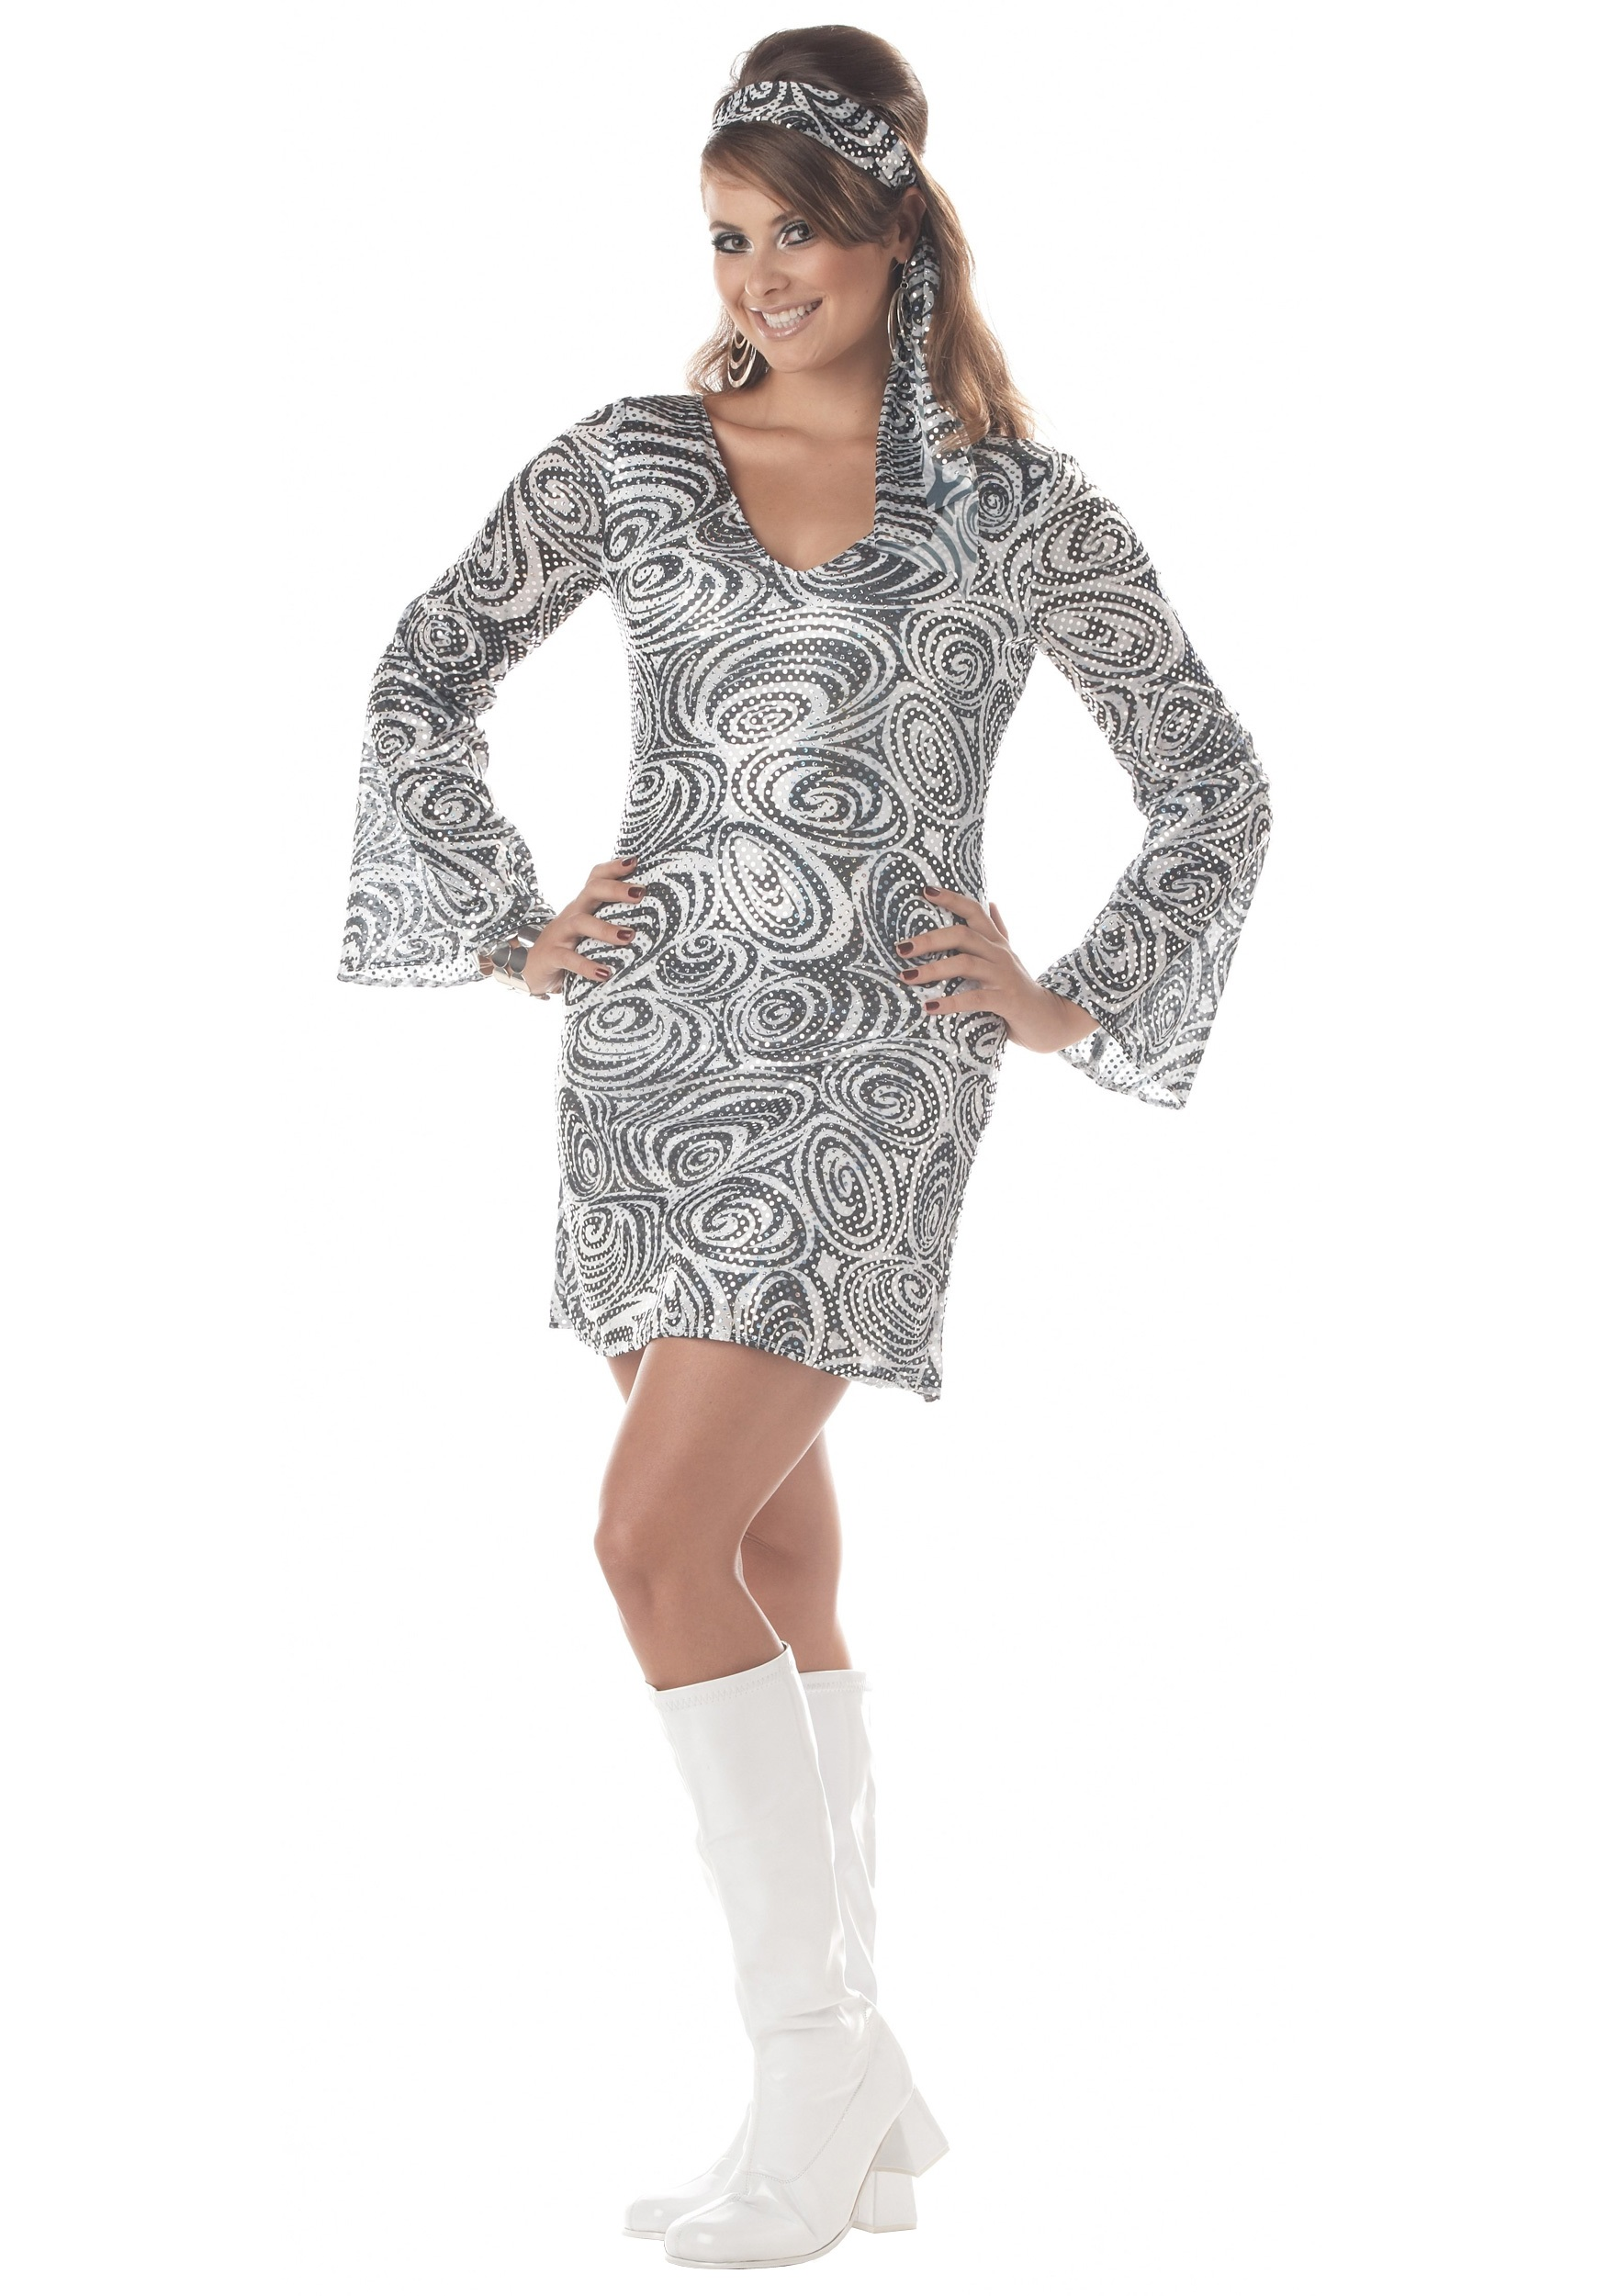 e6e94fdfdf7 Plus Size Disco Diva Dress Costume - Adult Disco Party Costumes 1X 2X 3X